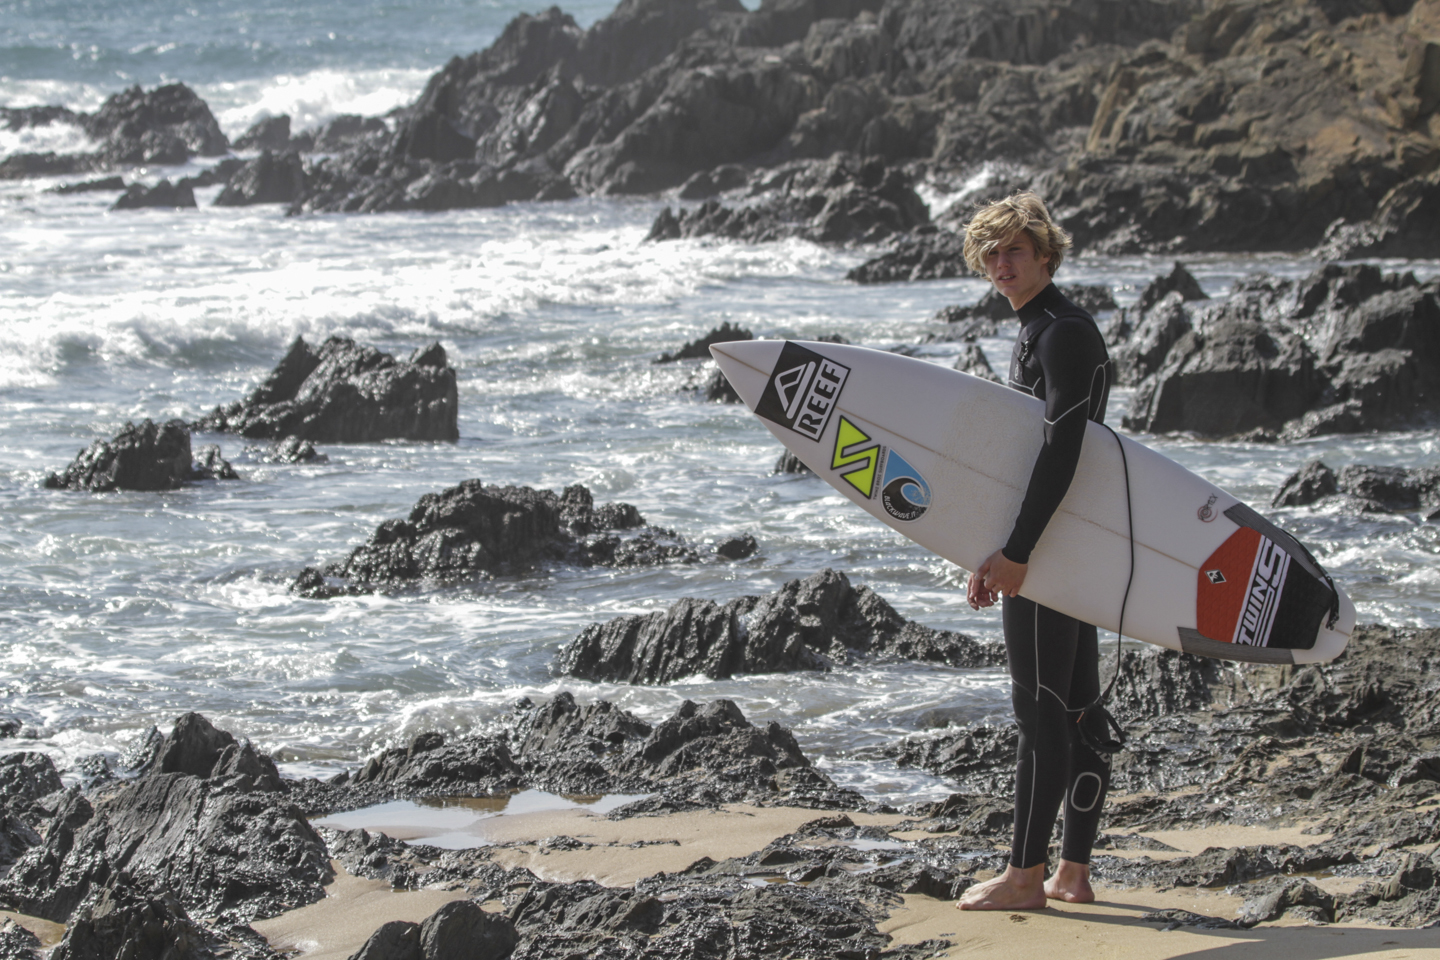 thomas_alfonso_intervista_surfculture-3587